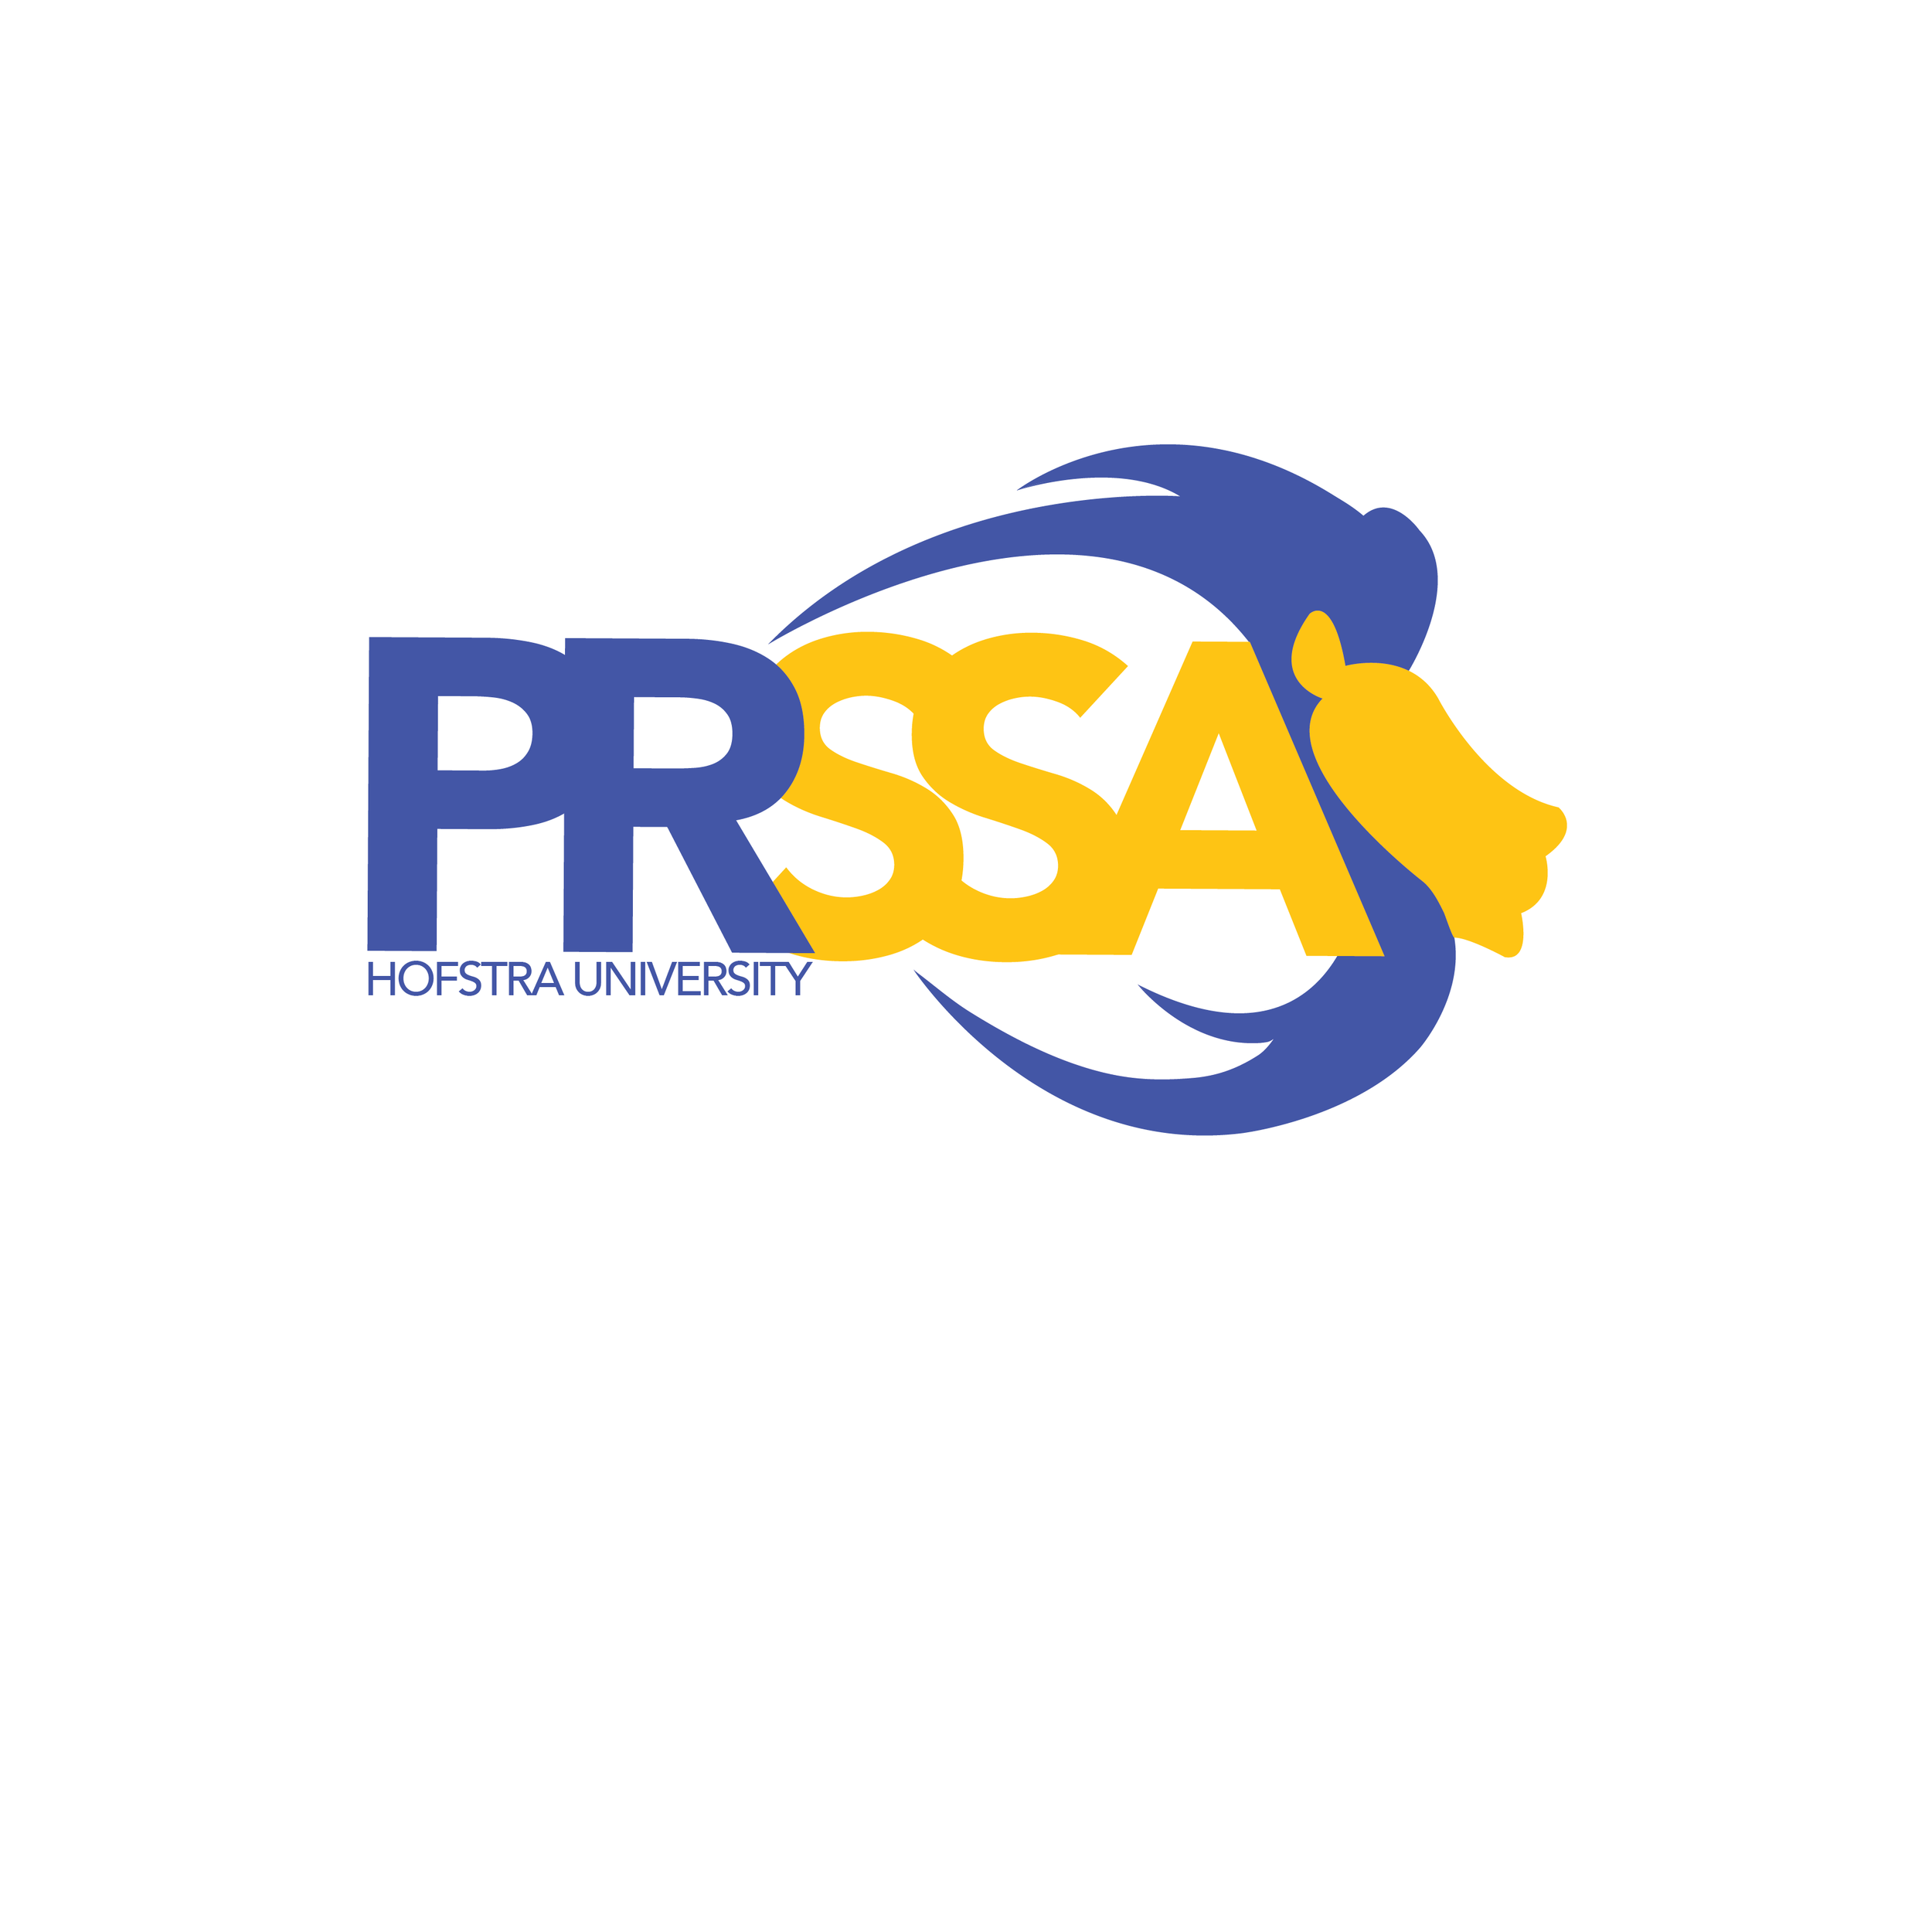 Alternative Hofstra PRSSA logo